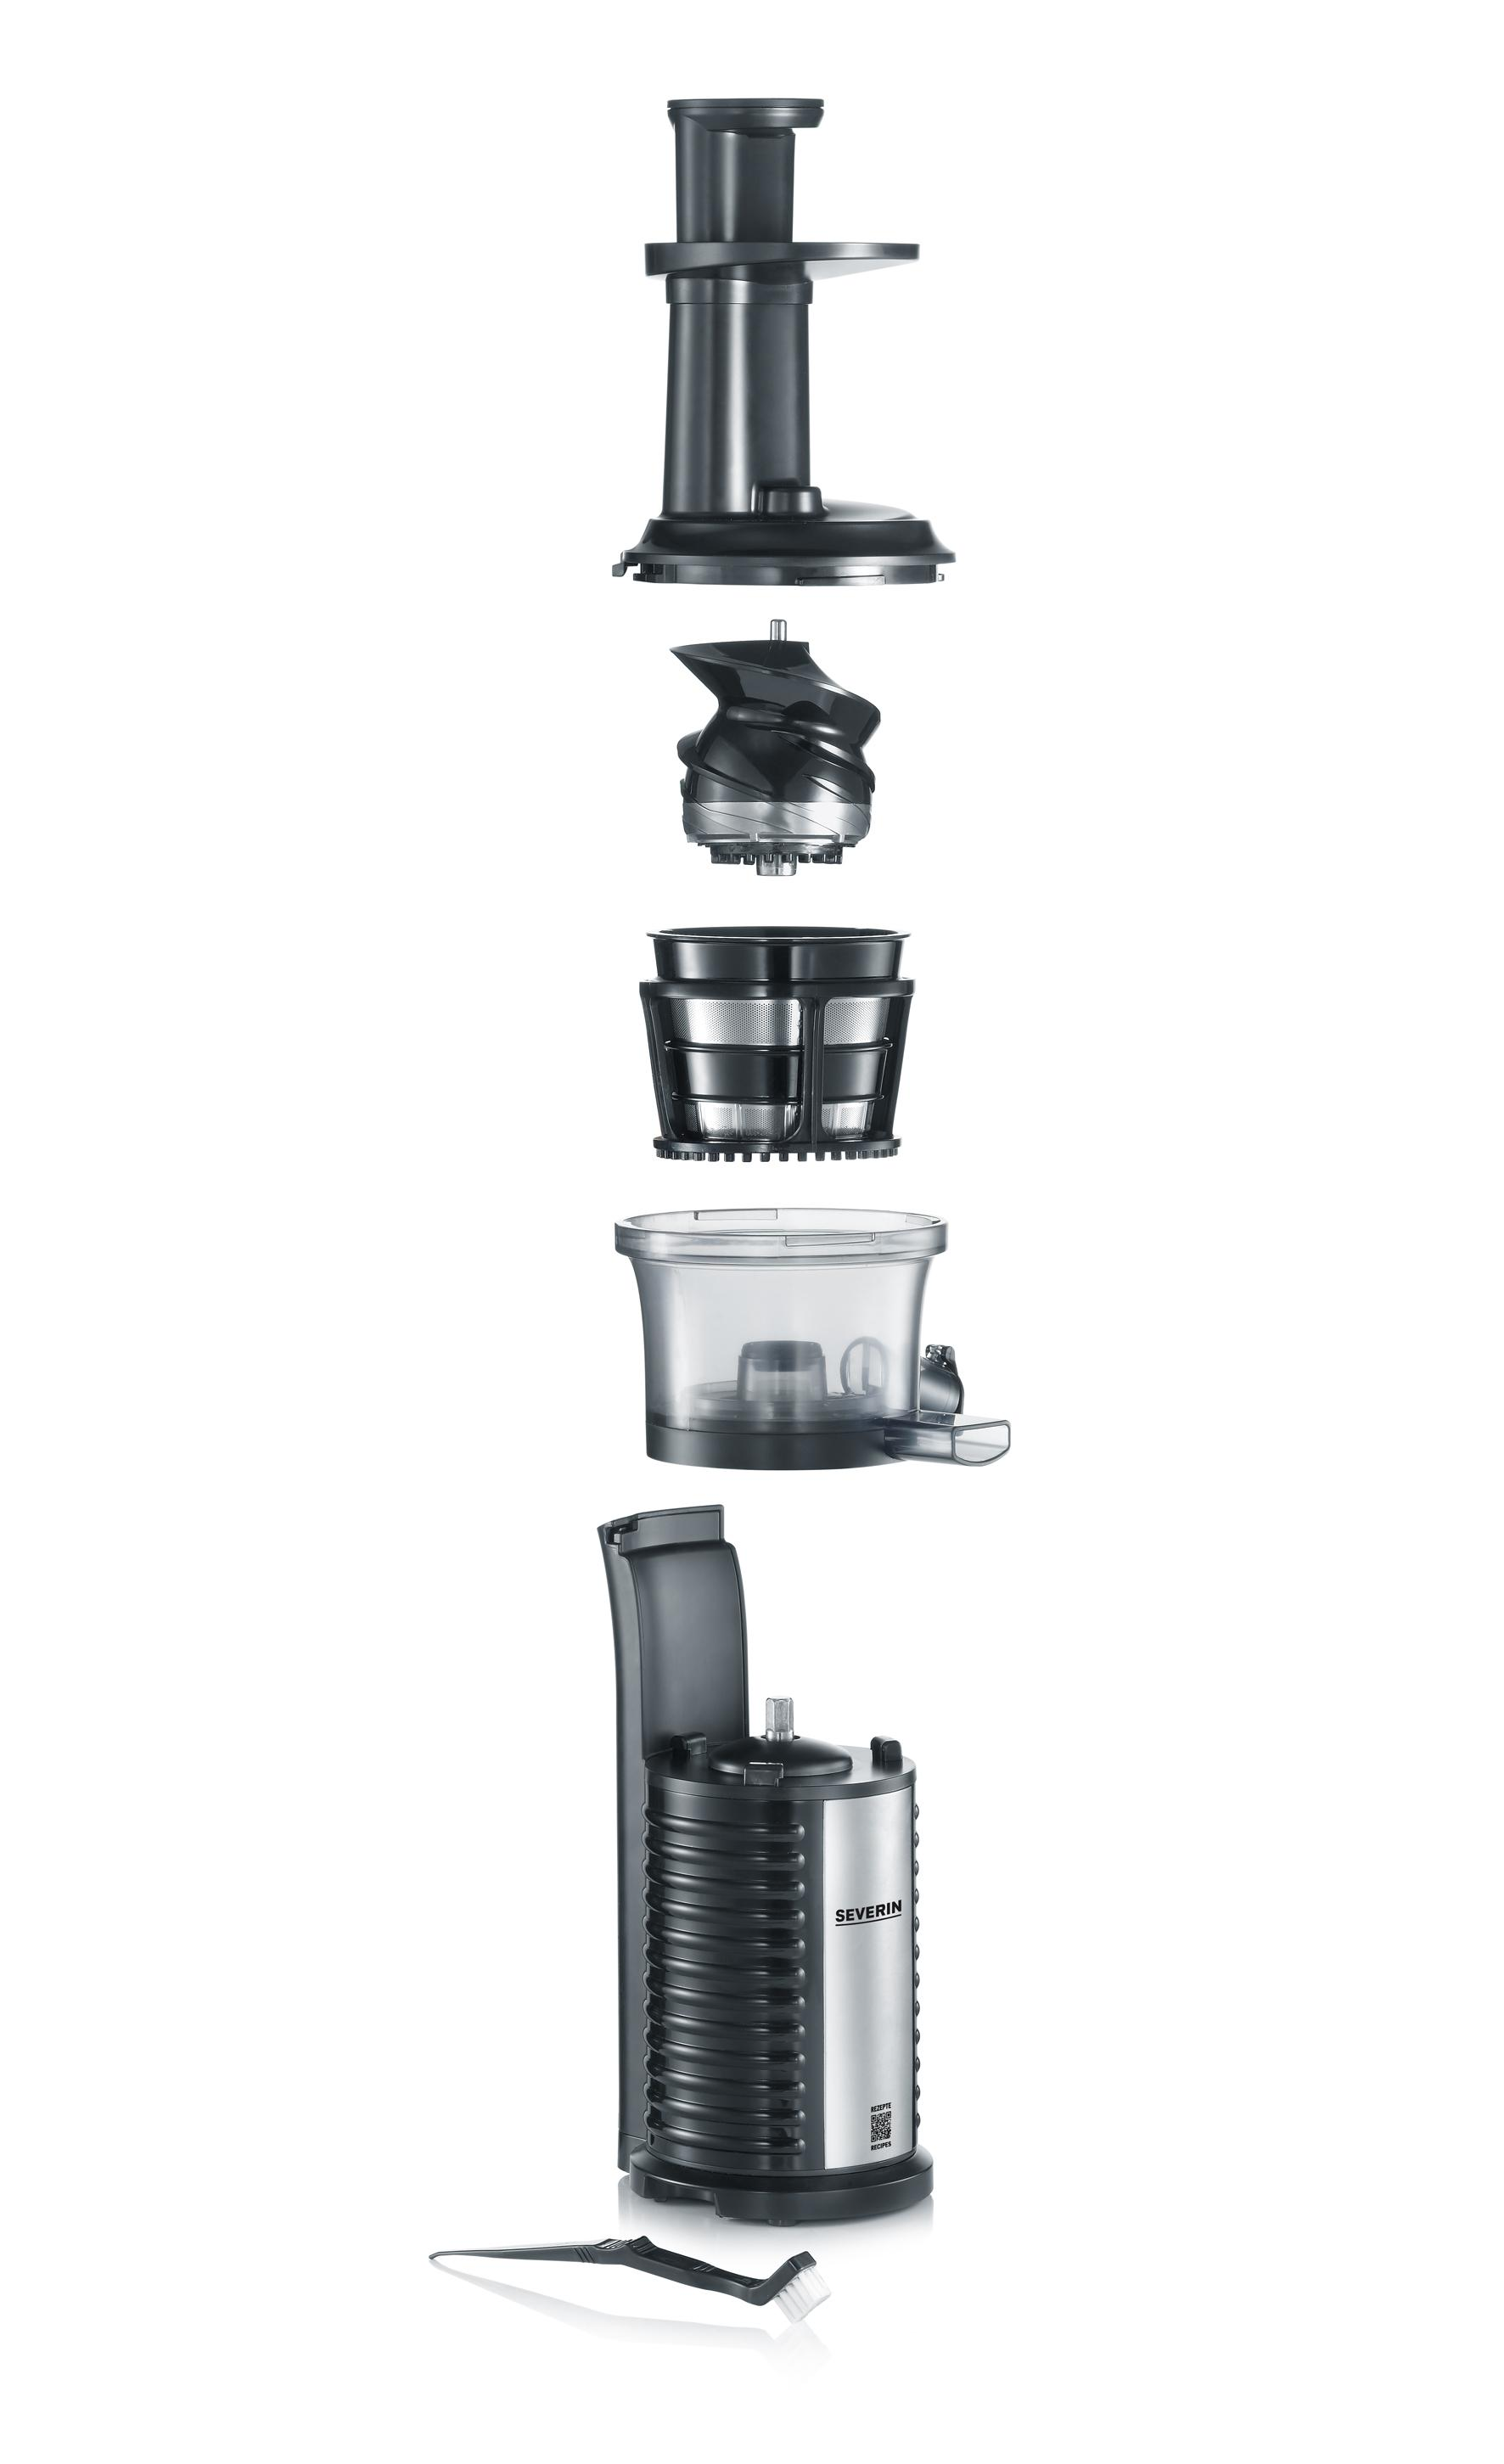 Severin Es 3569 Slow Juicer Recensioni : Severin ES 3569 Slow Juicer Estrattore di Succo senza Lame, BPA free: Amazon.it: Casa e cucina